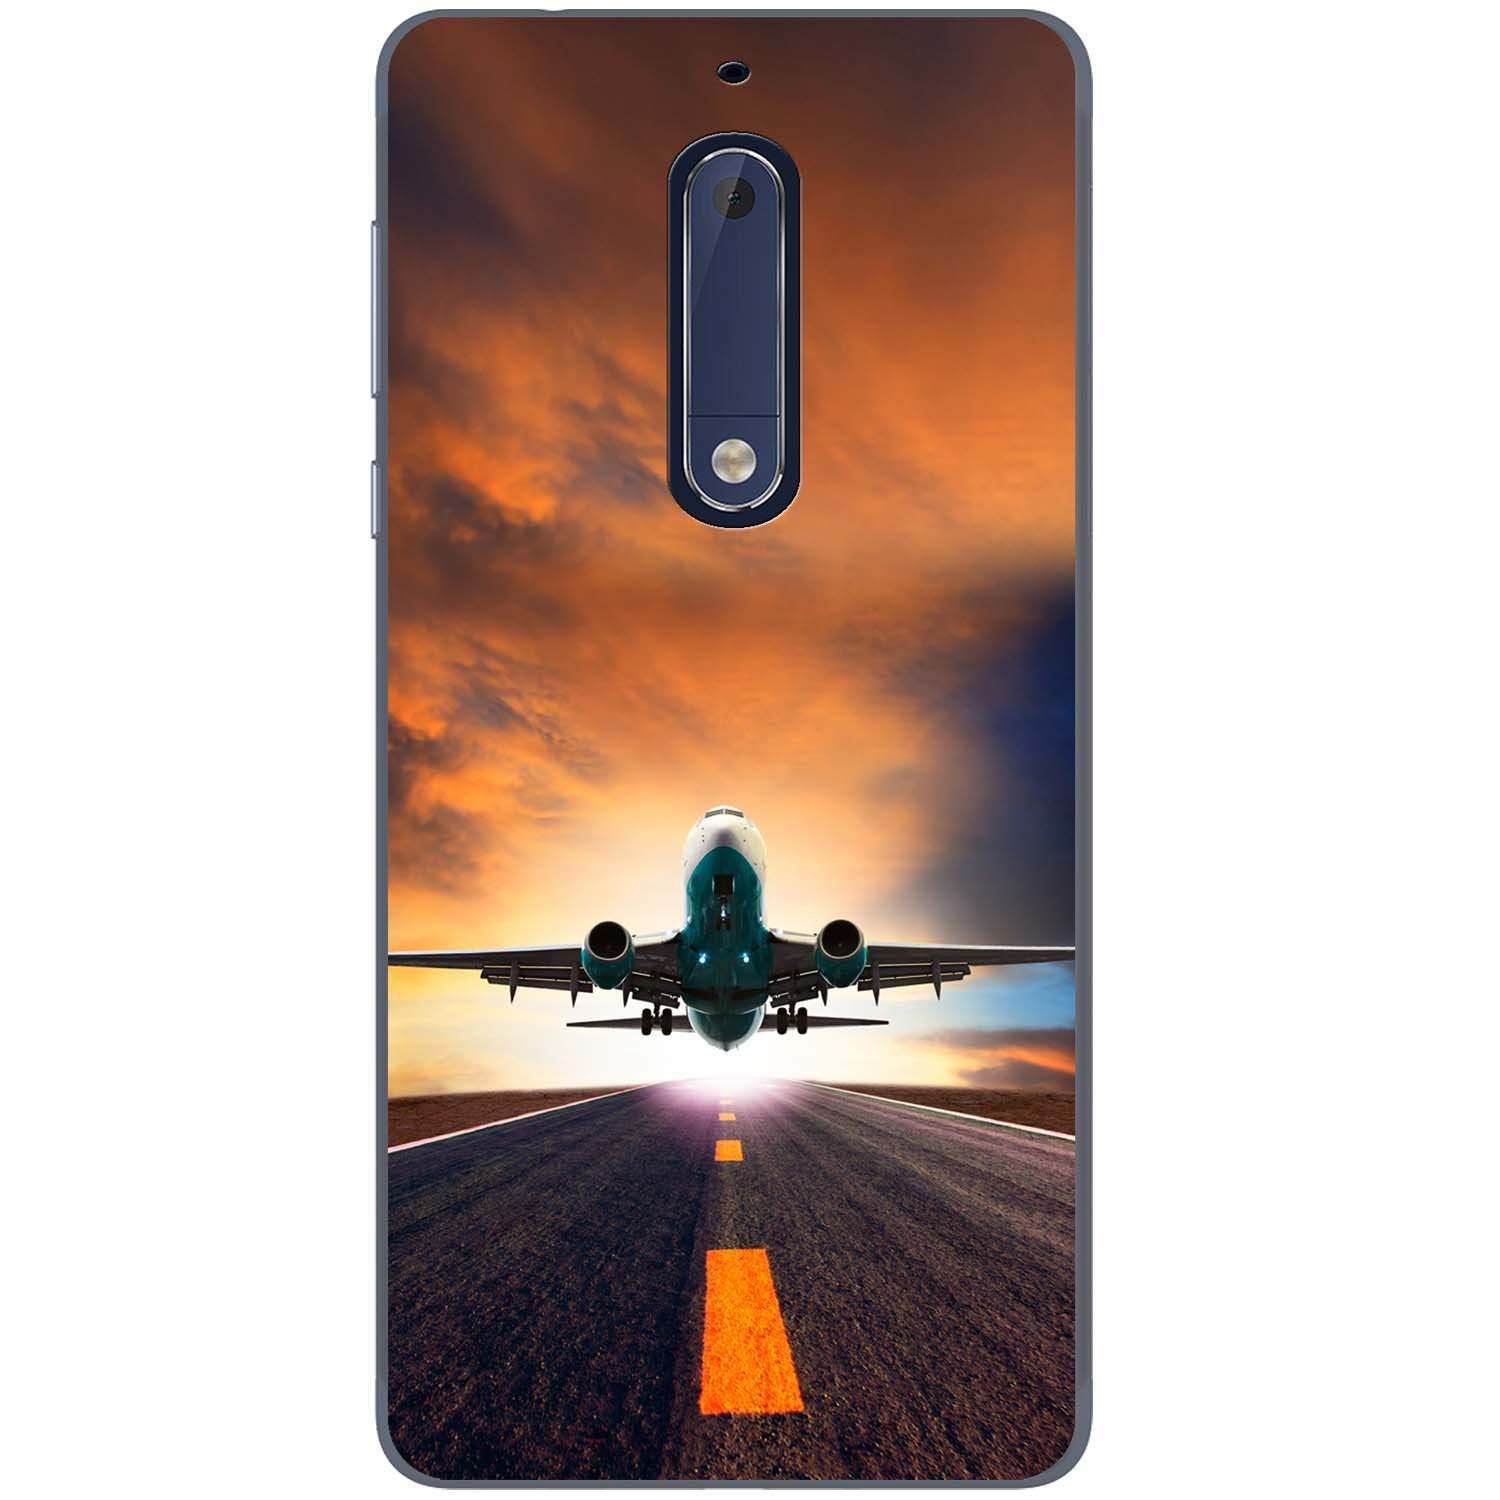 Commercial Jet Takes Off Fancy A Snuggle Planes avions avions t/él/éphone Housse//Coque rigide pour t/él/éphone portable Samsung Samsung Galaxy S9